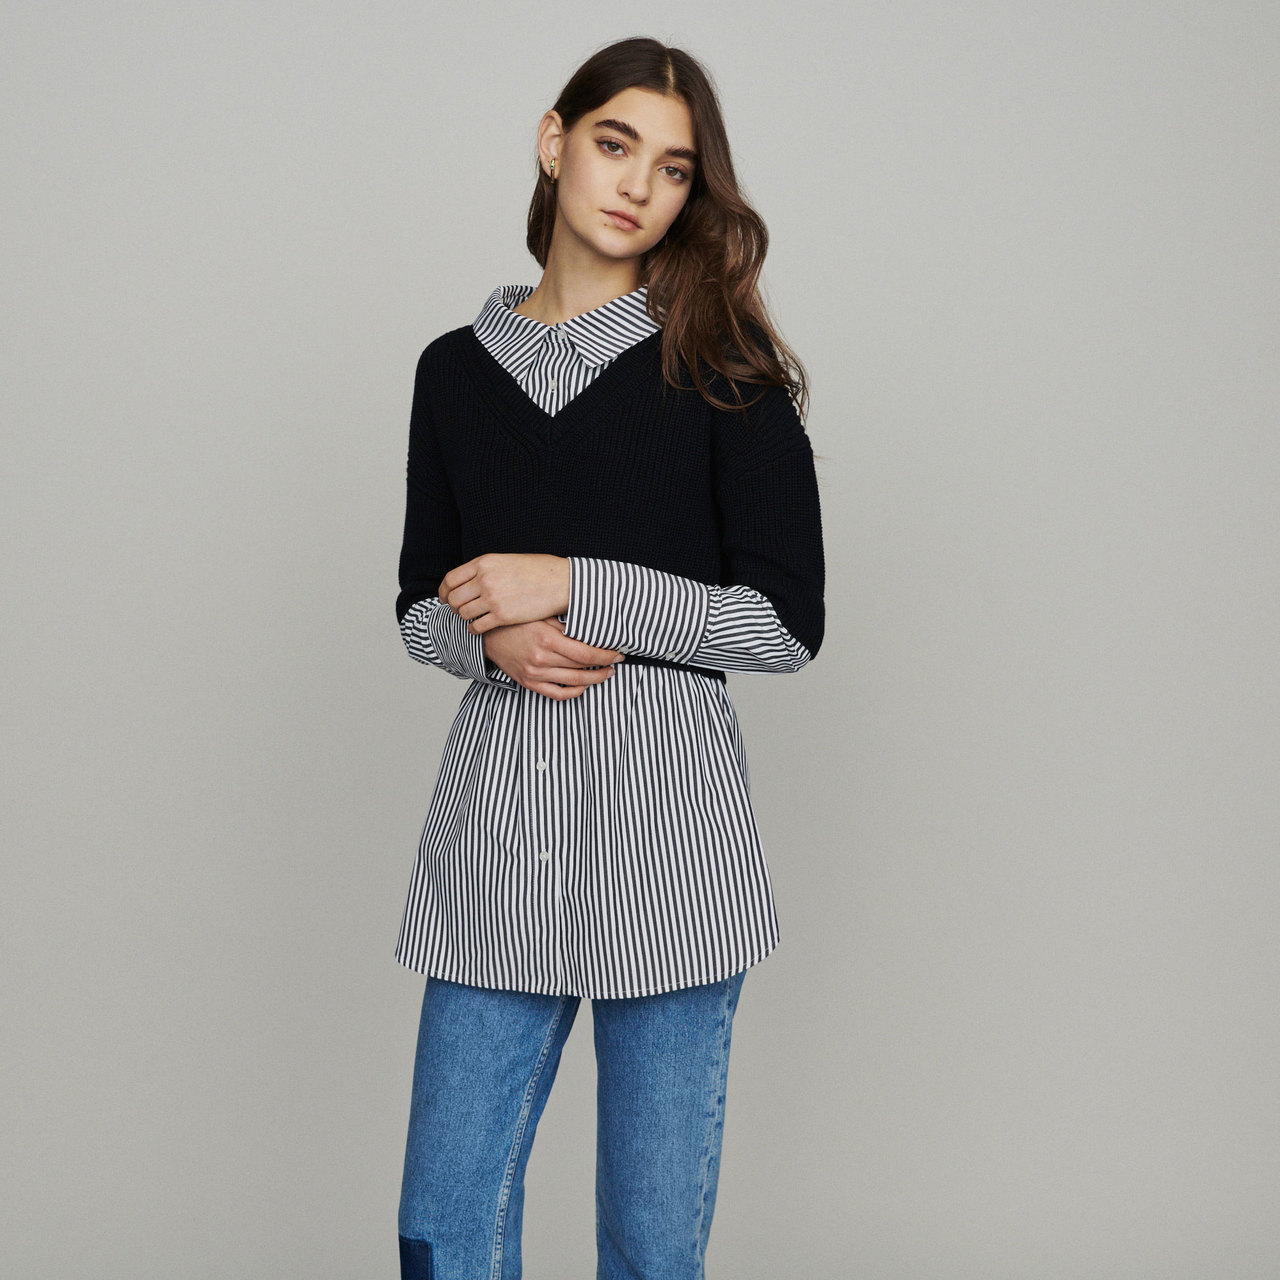 Trompe-L'oeil Effect Cropped Sweater With Striped Shirt - Black